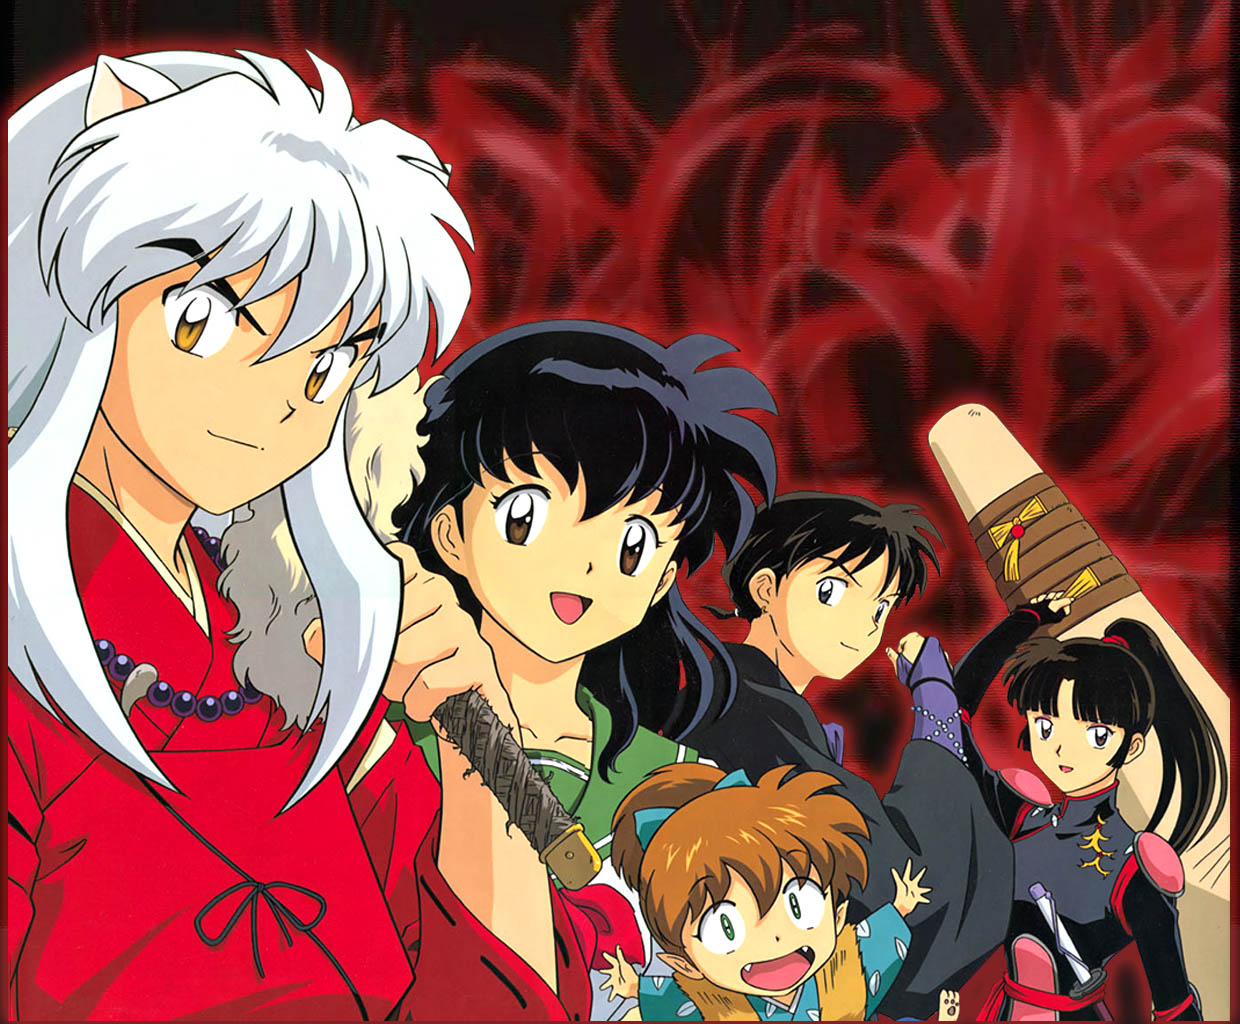 http://3.bp.blogspot.com/-G6wGzeajja0/TWefncsEZJI/AAAAAAAAATU/E25Xrn1a9as/s1600/inuyasha-group-wallpaper.jpg